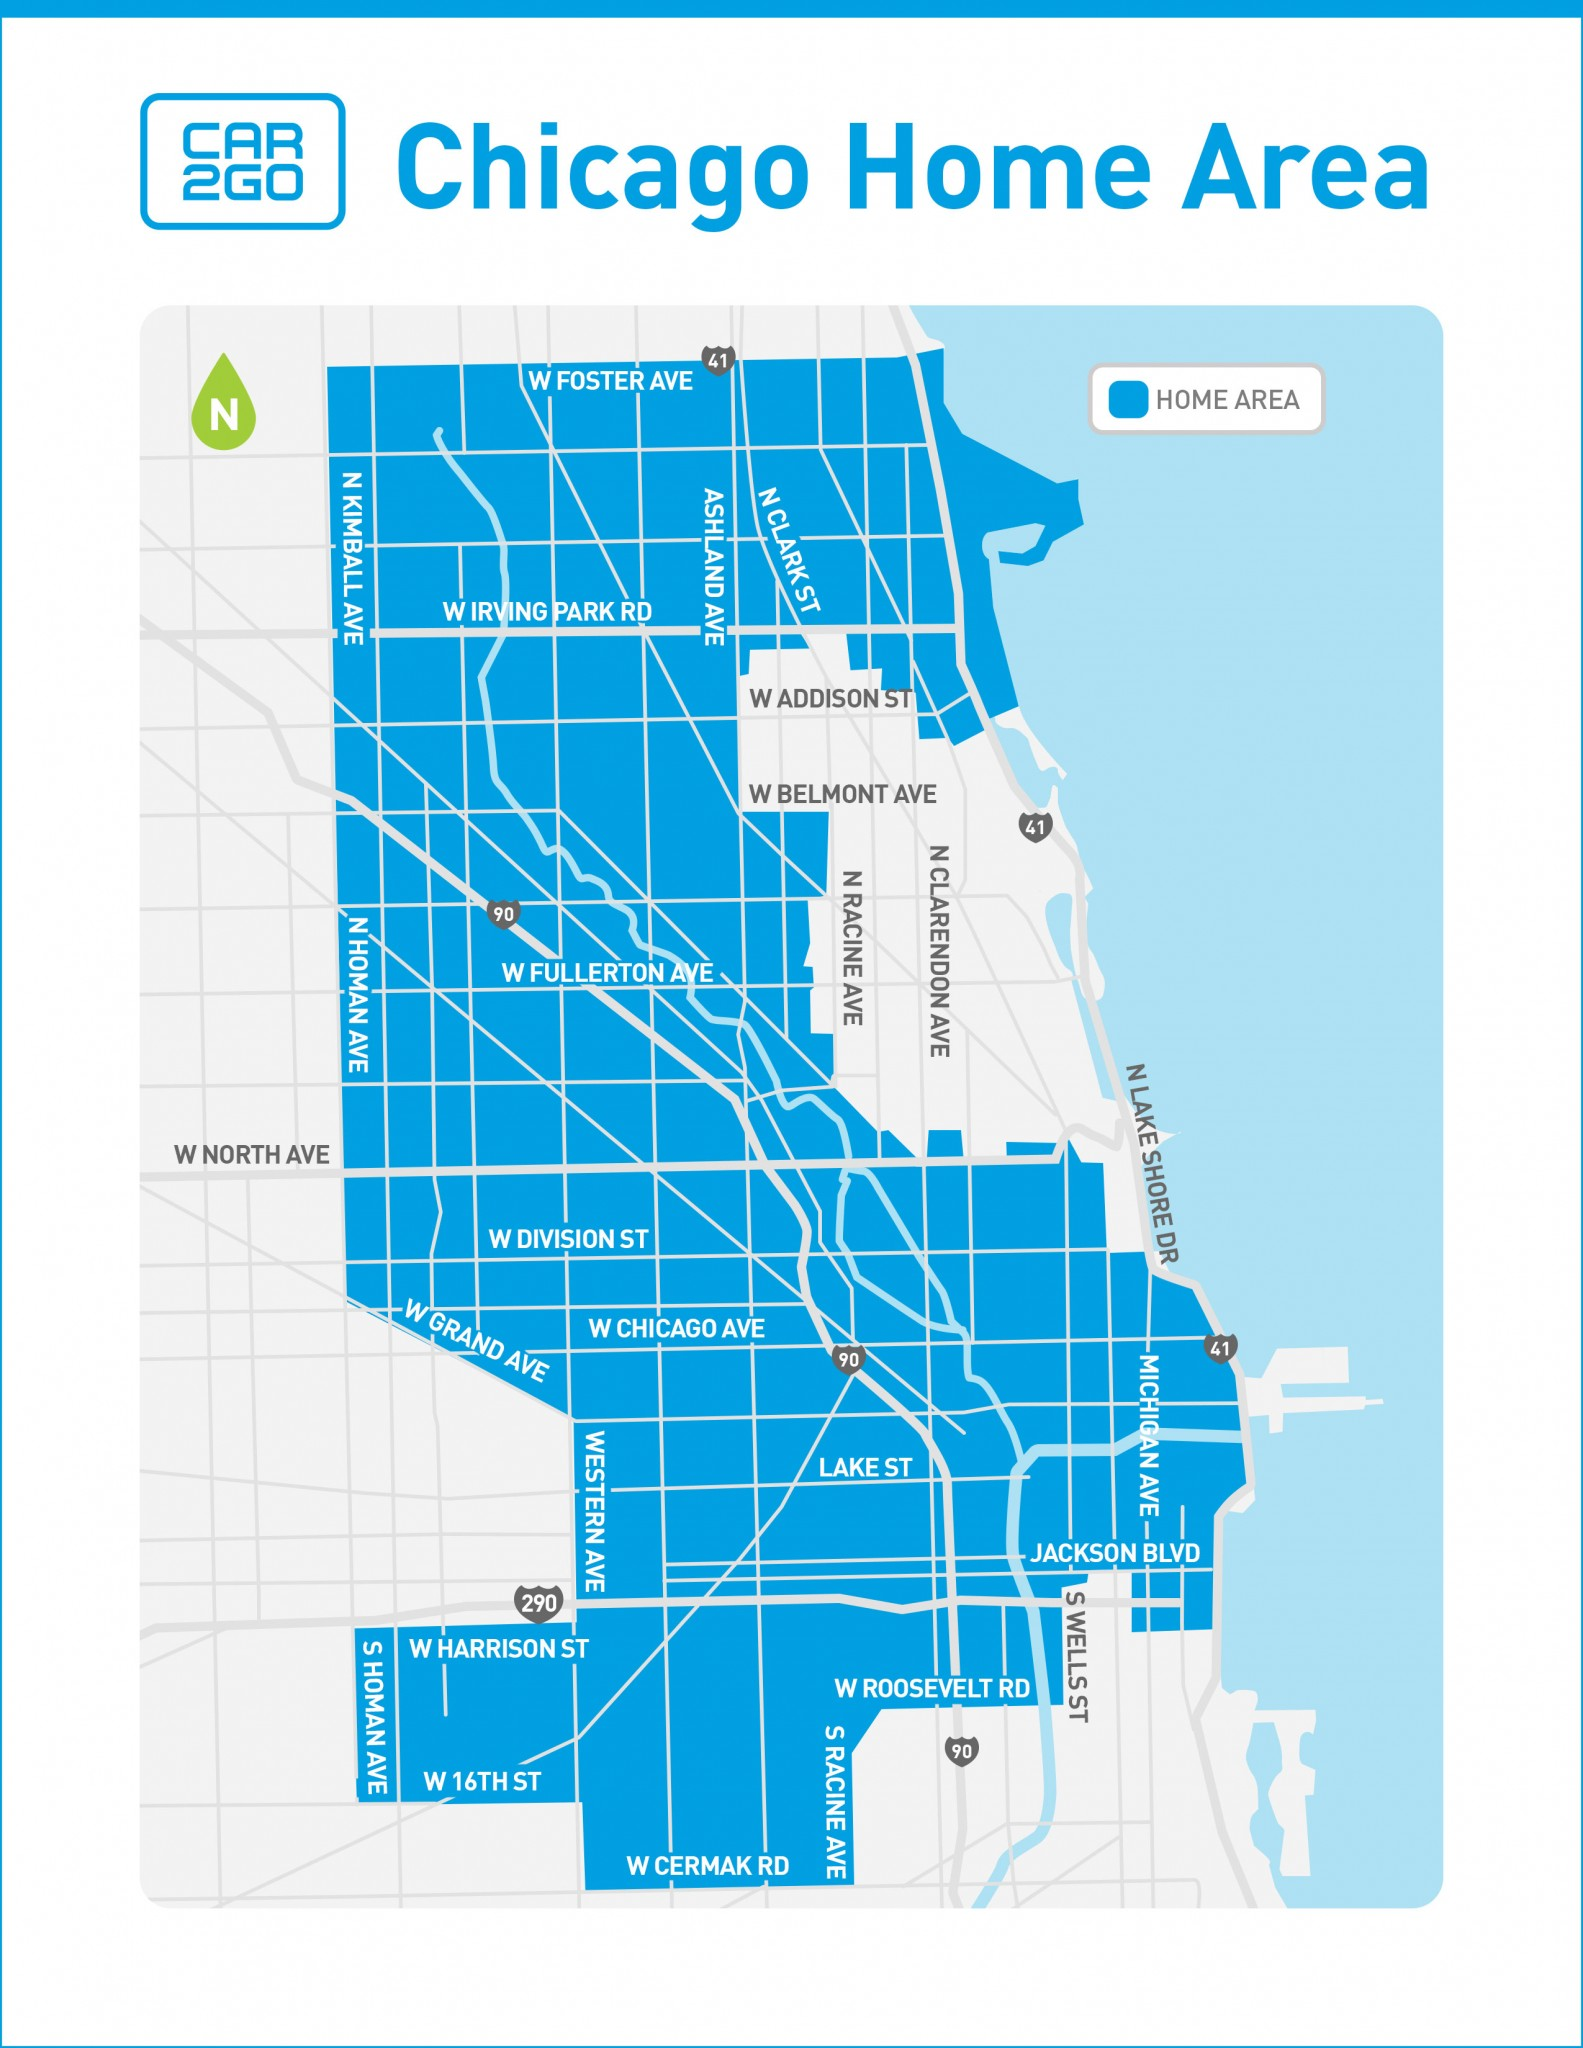 car2go chicago home area